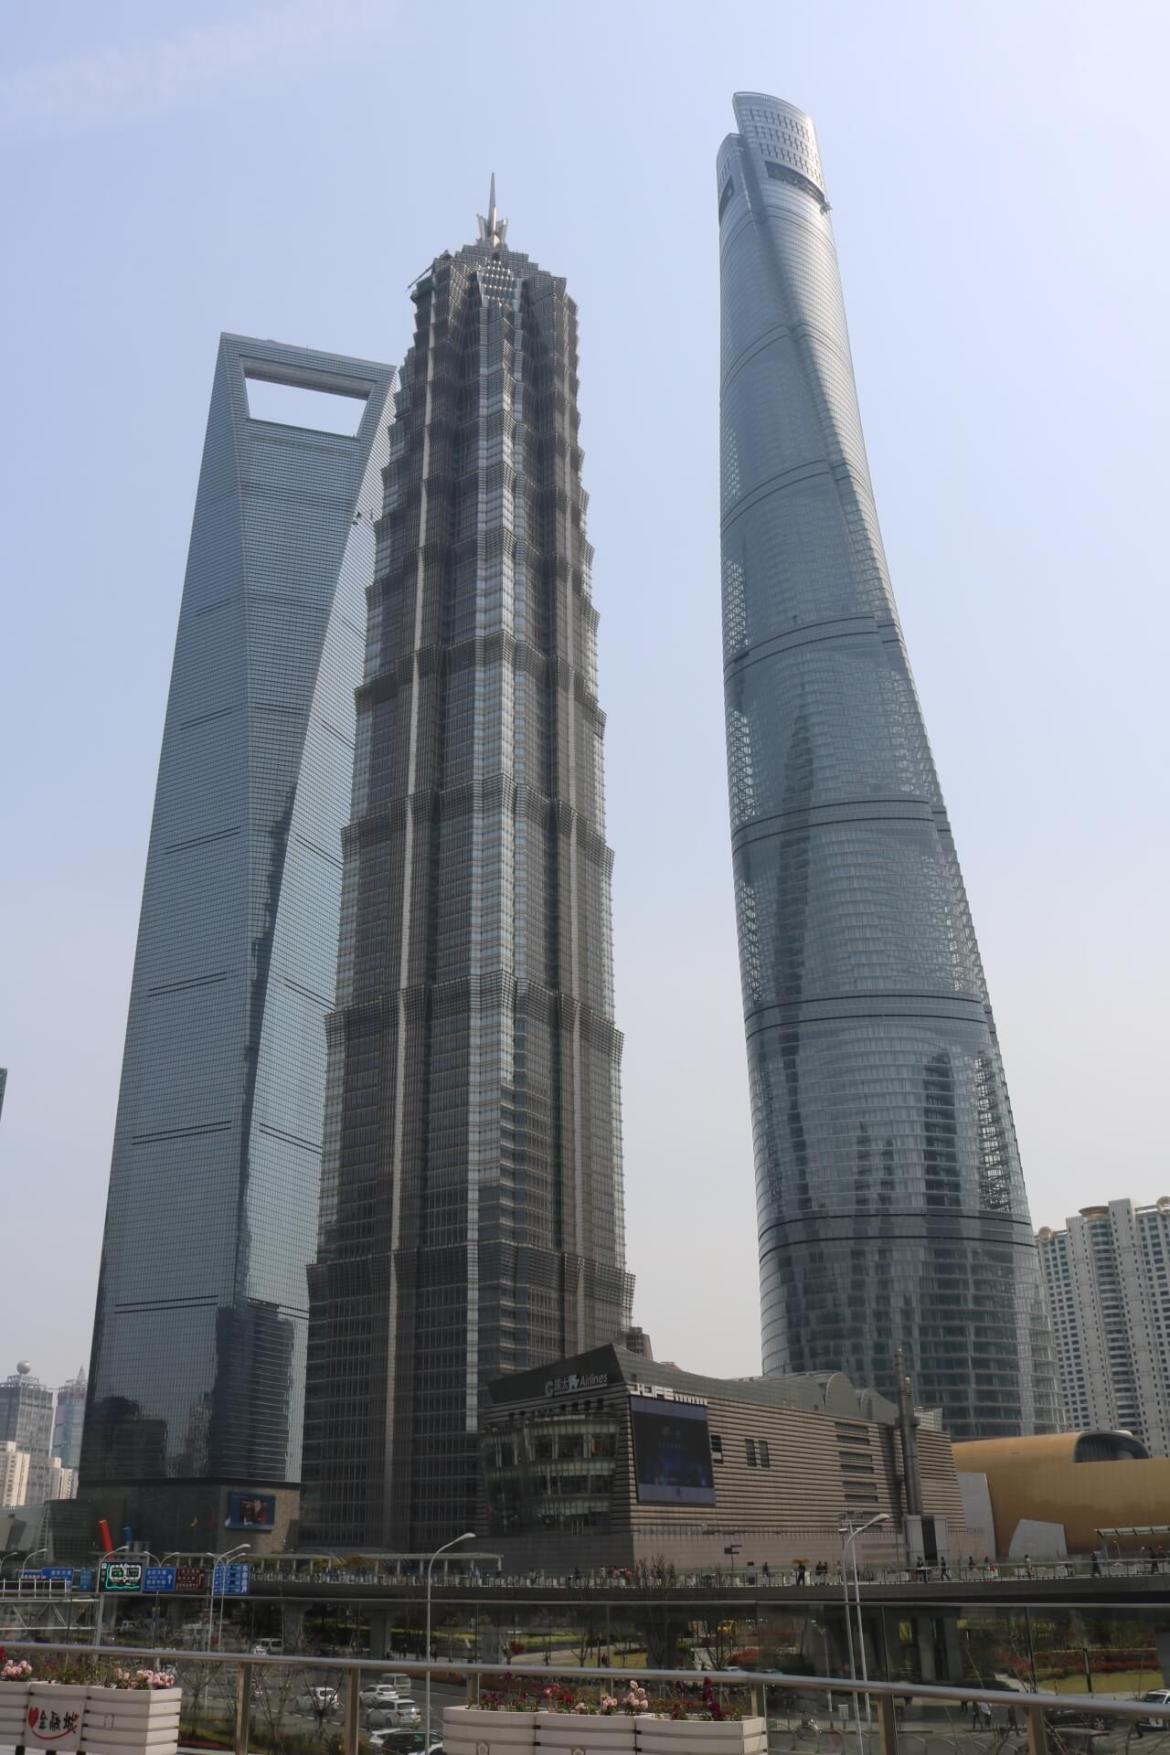 Shanghai World Financial Center, Jin Mao Tower, and Shanghai Tower.